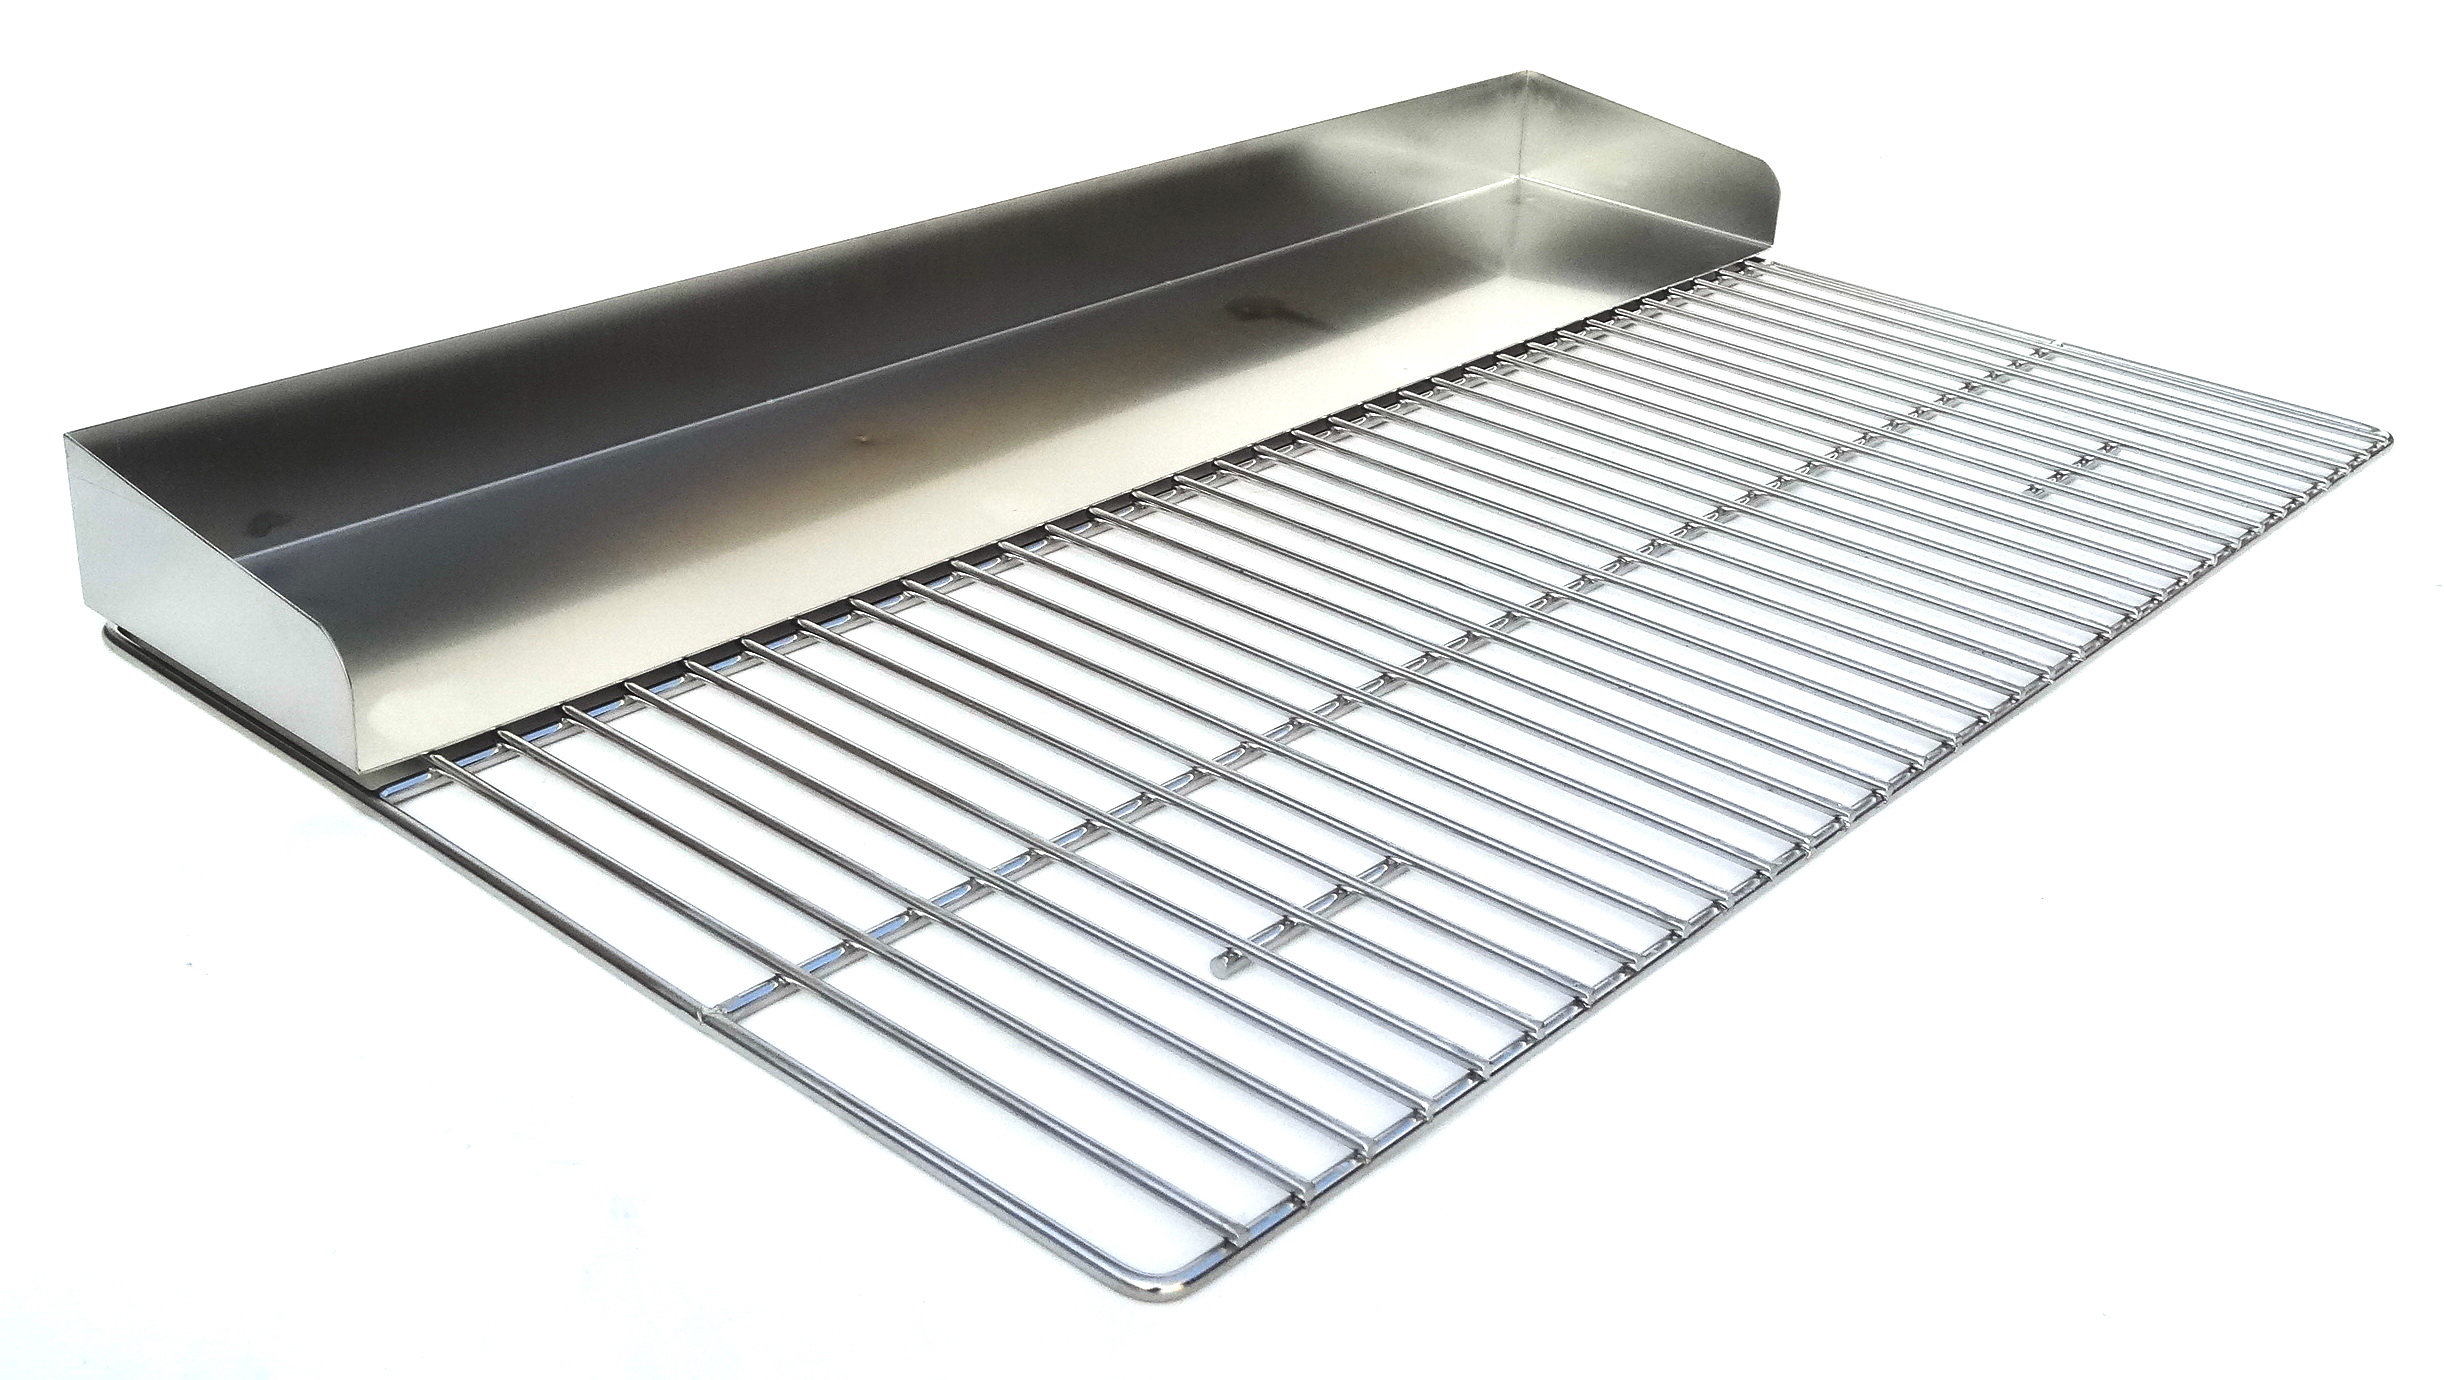 grilli is made outdoor in polar a with grill models skewers en high set saslik rack quality